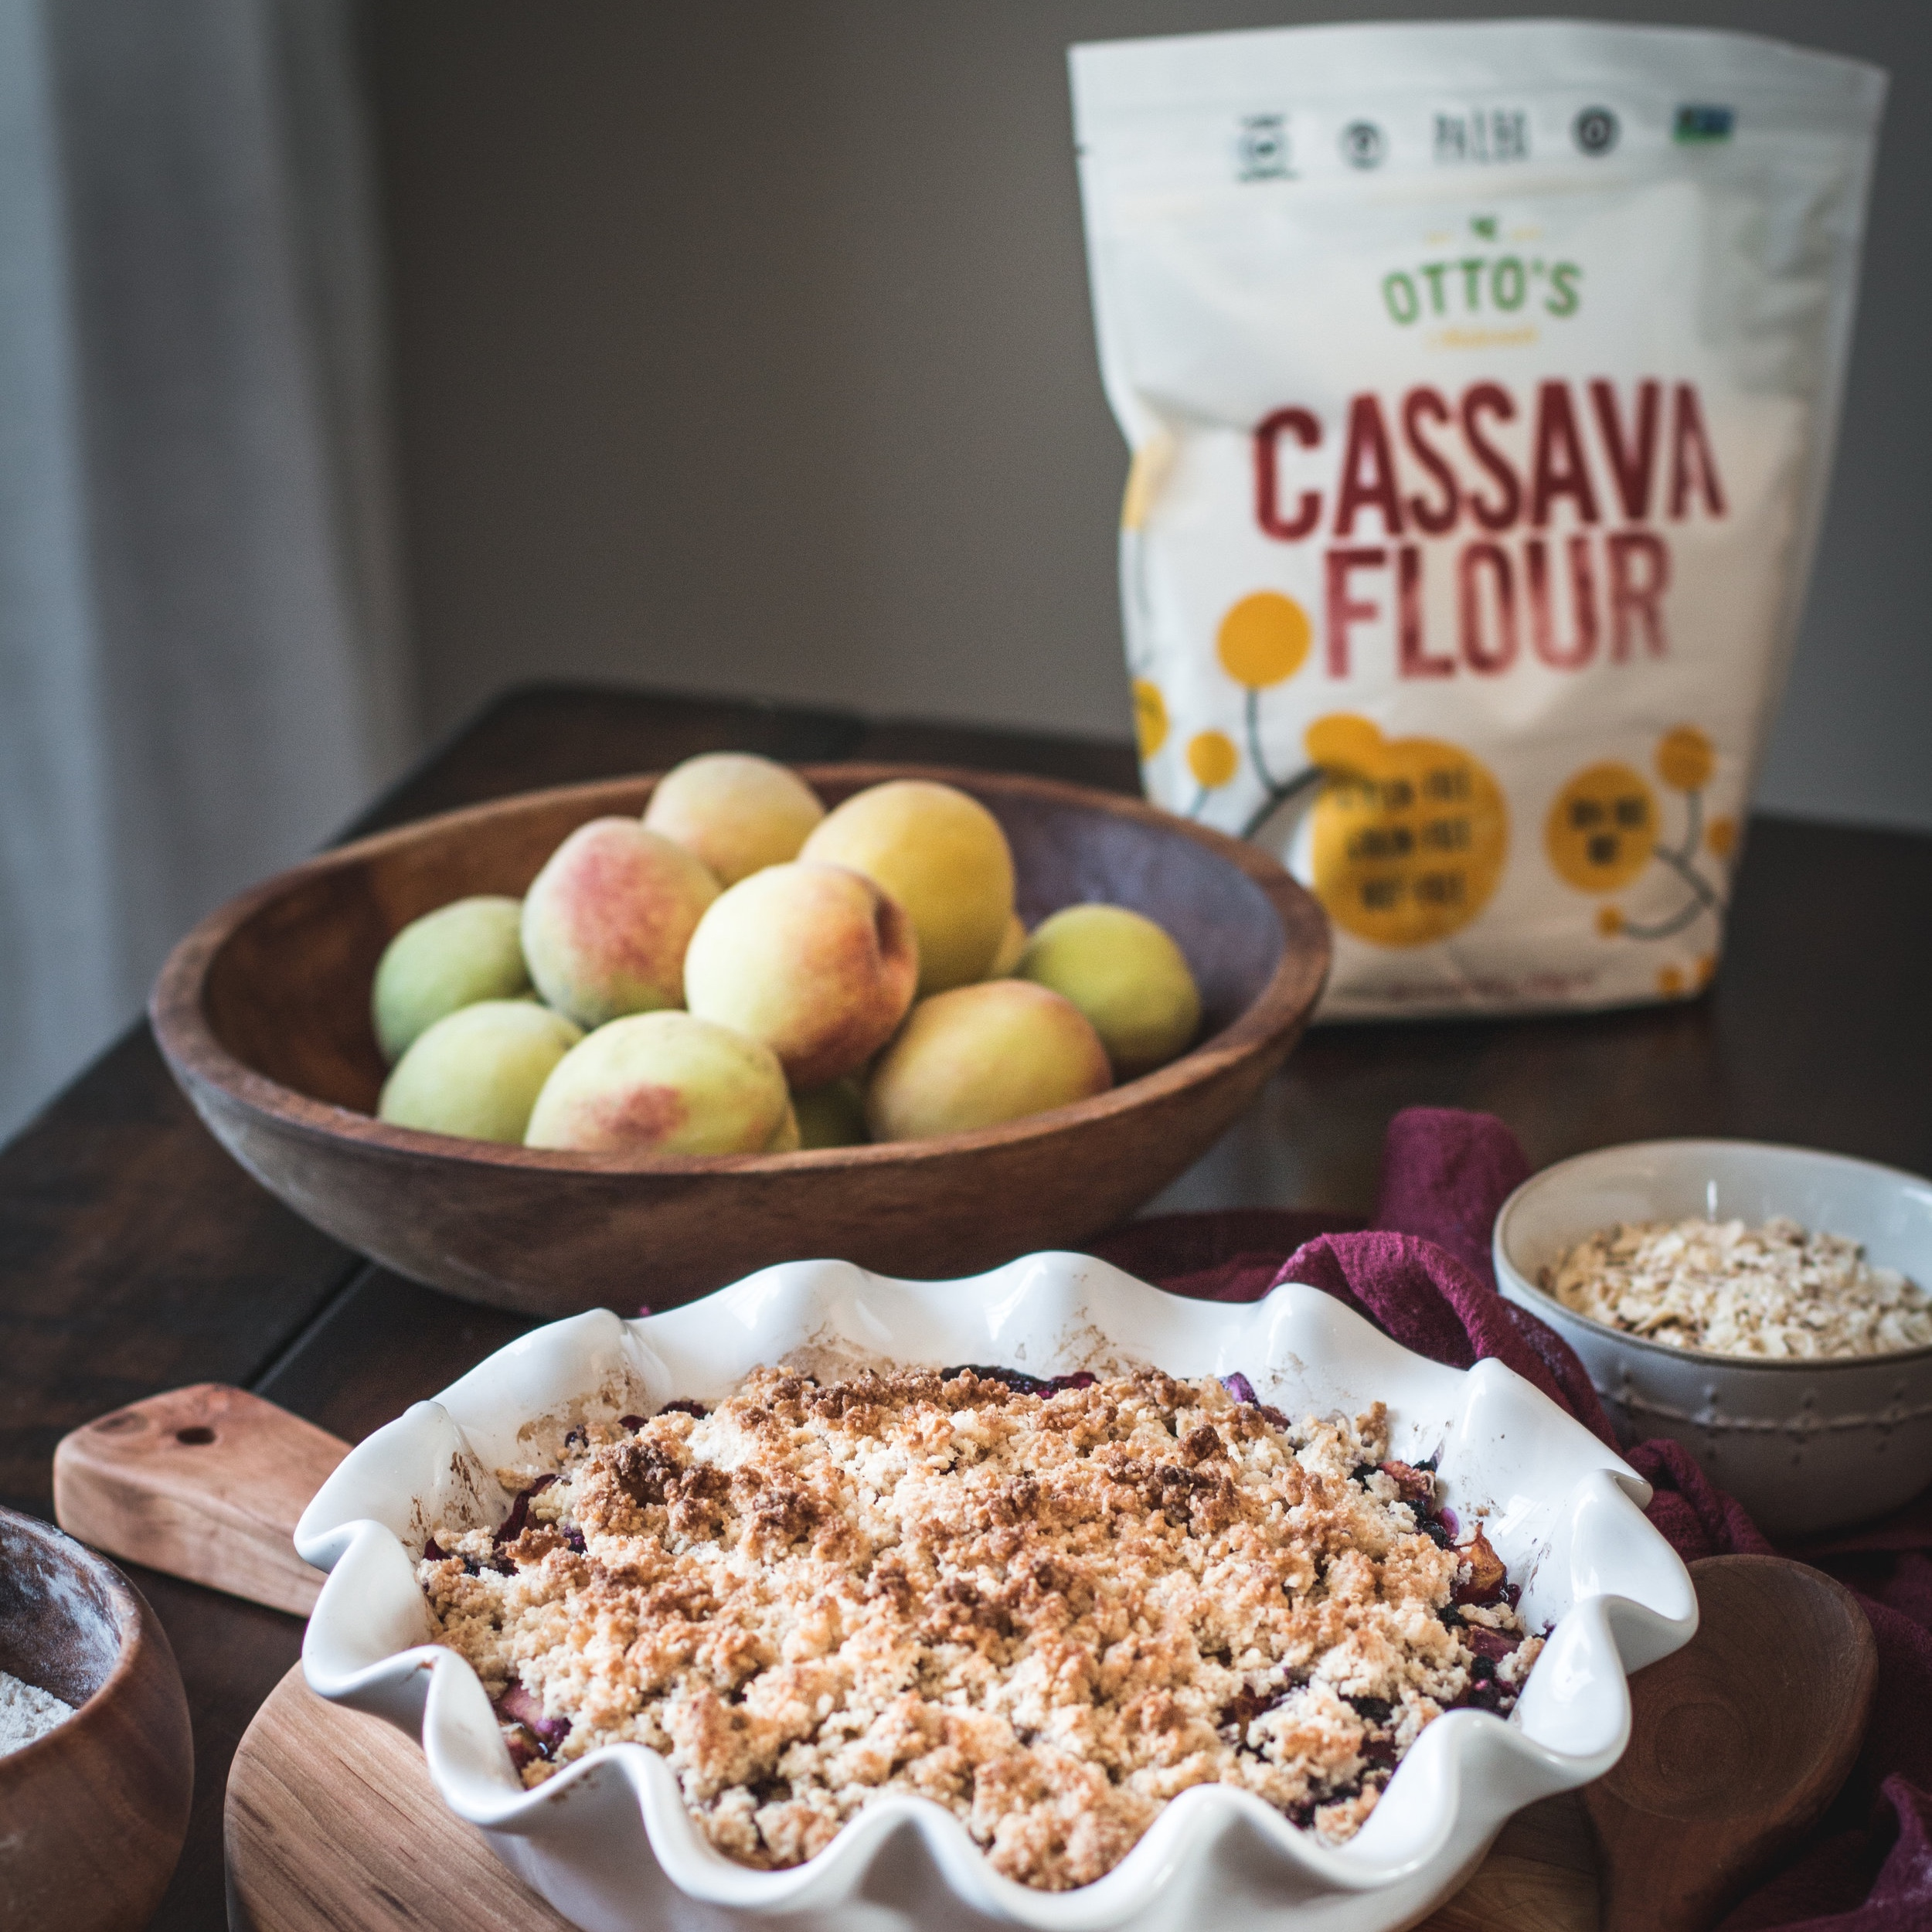 """Otto's Cassava Flour - My absolute favorite gluten-free, grain-free flour suitable for paleo and autoimmune protocol diets. Use code """"RESTORATIVEKITCHEN10"""" for 10% off your order!"""